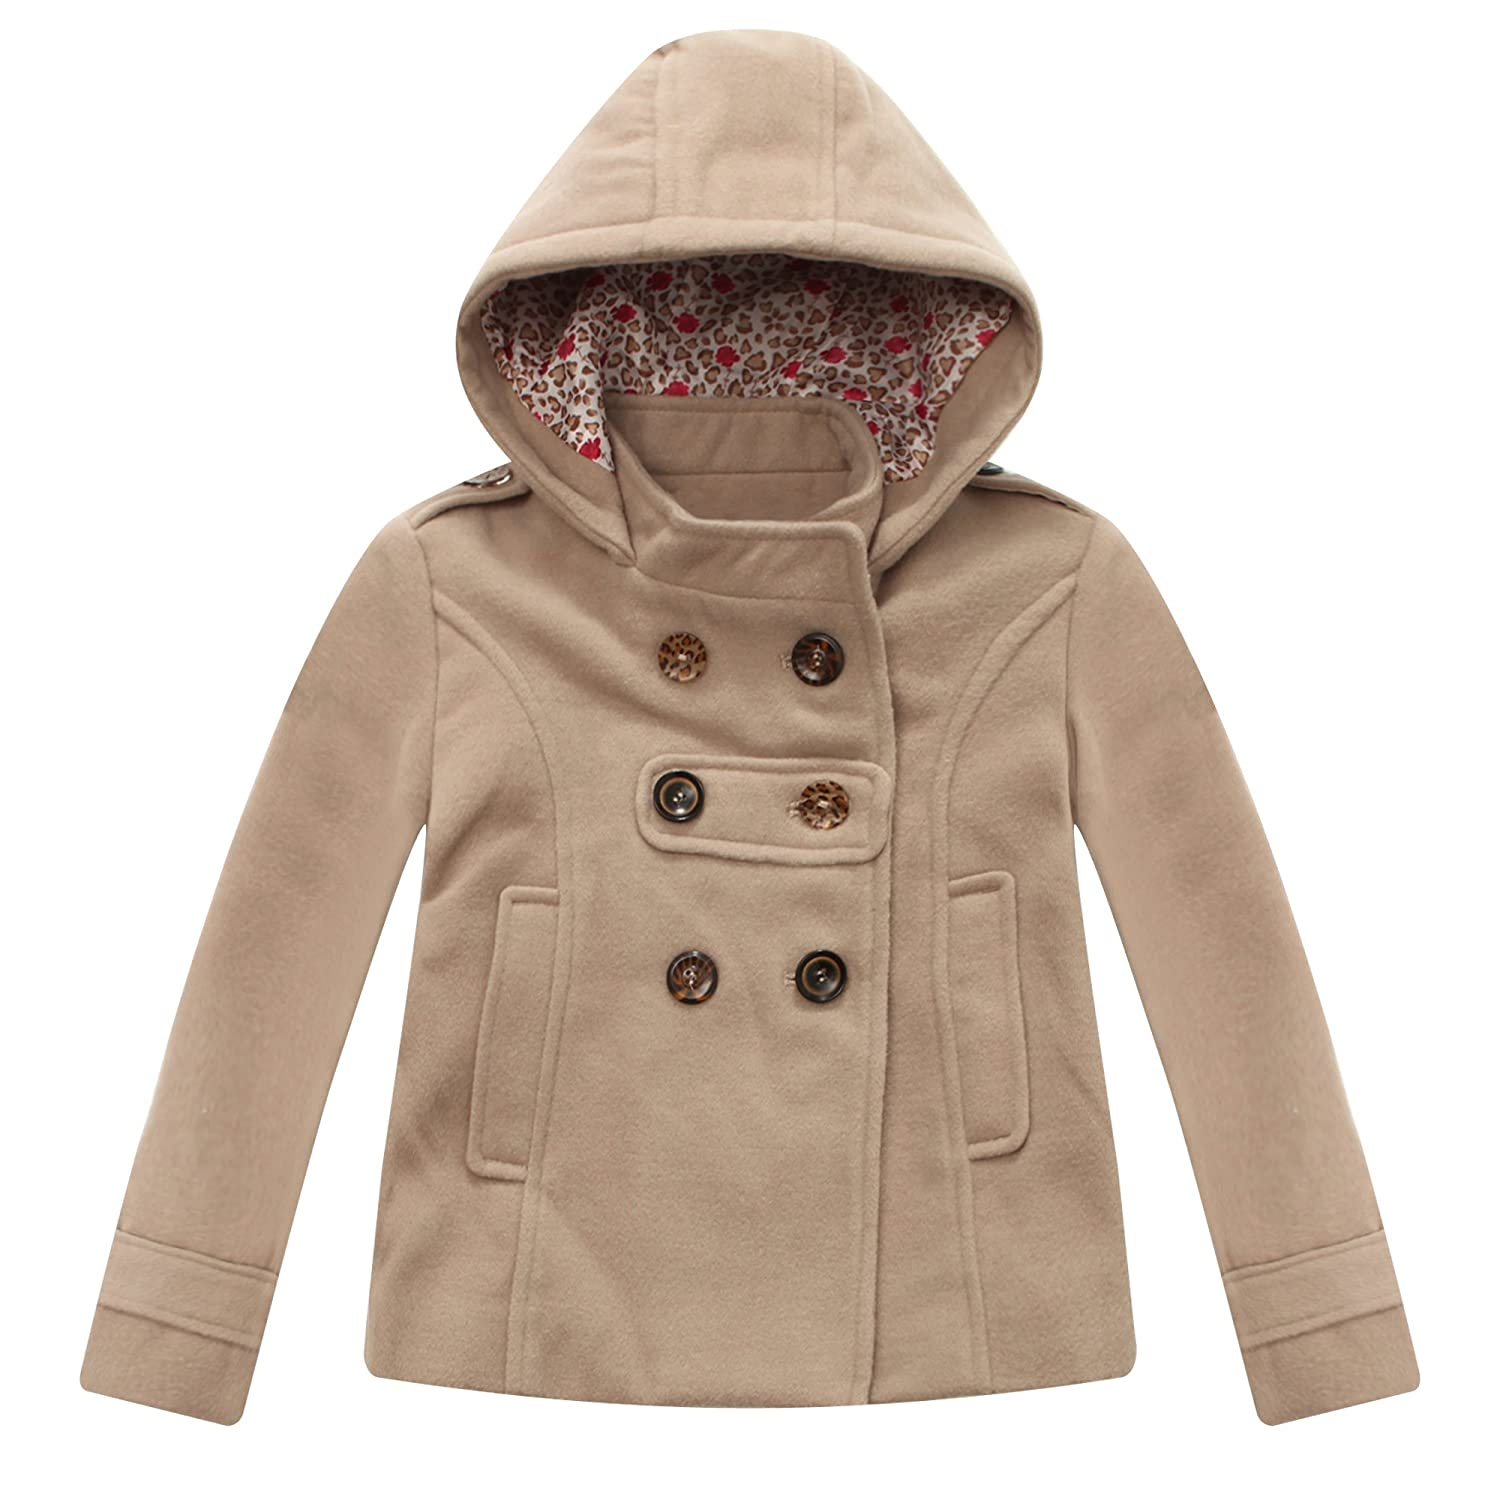 Richie House Girl's Microfleece Jacket with Decorative Buttons RH1064